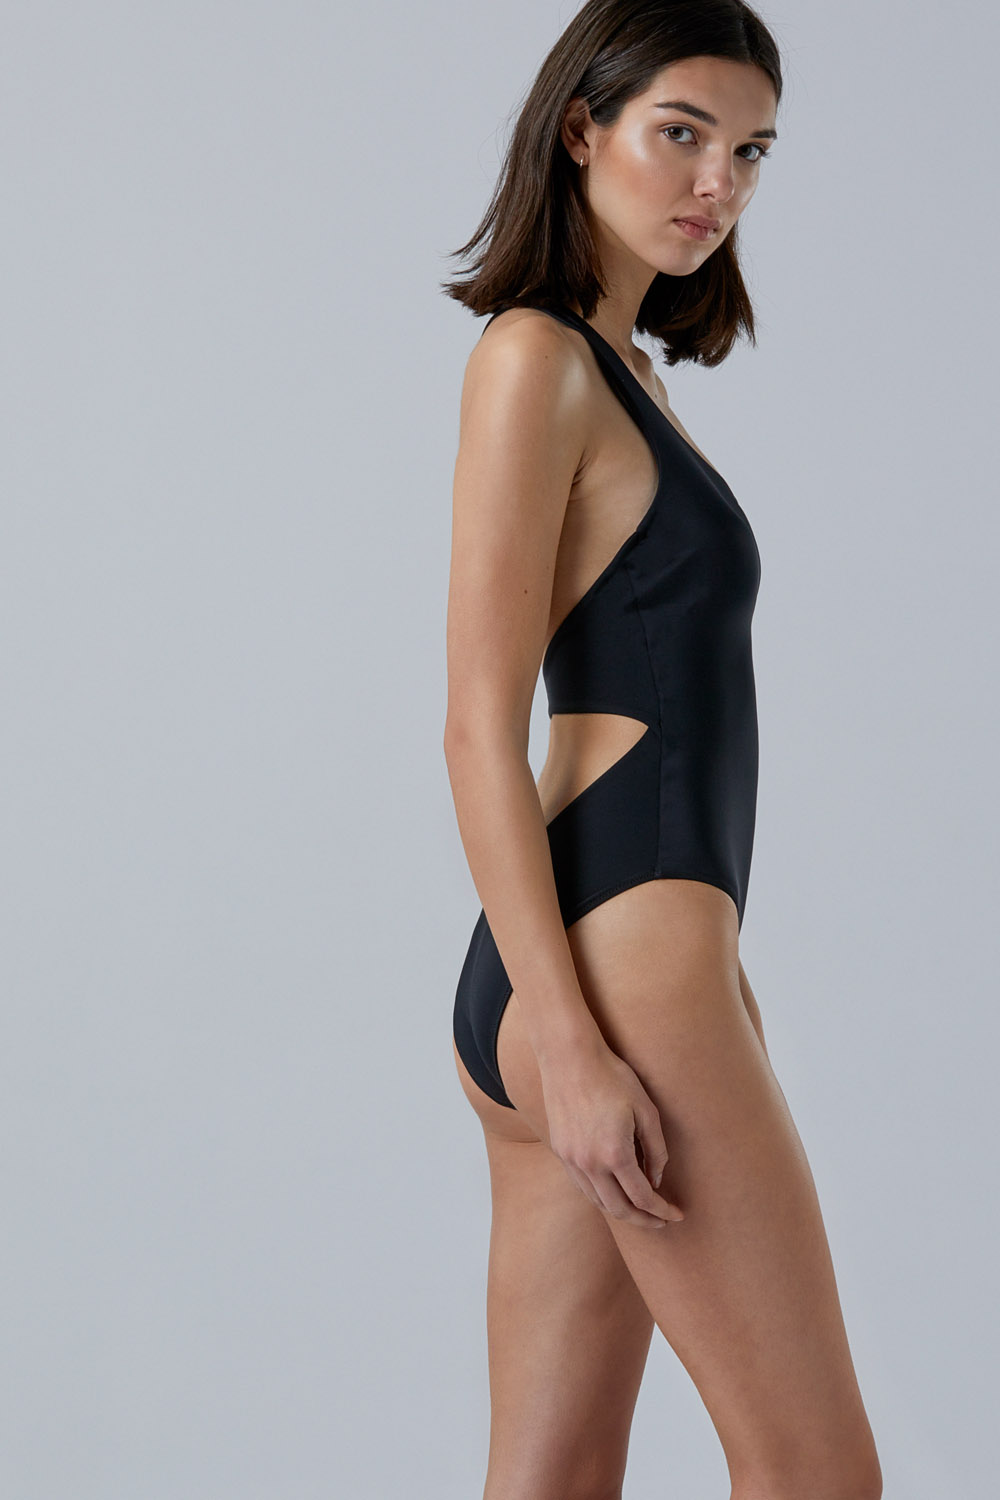 Sendai onepiece, by NOW_THEN eco swimwear / bañador ecológico